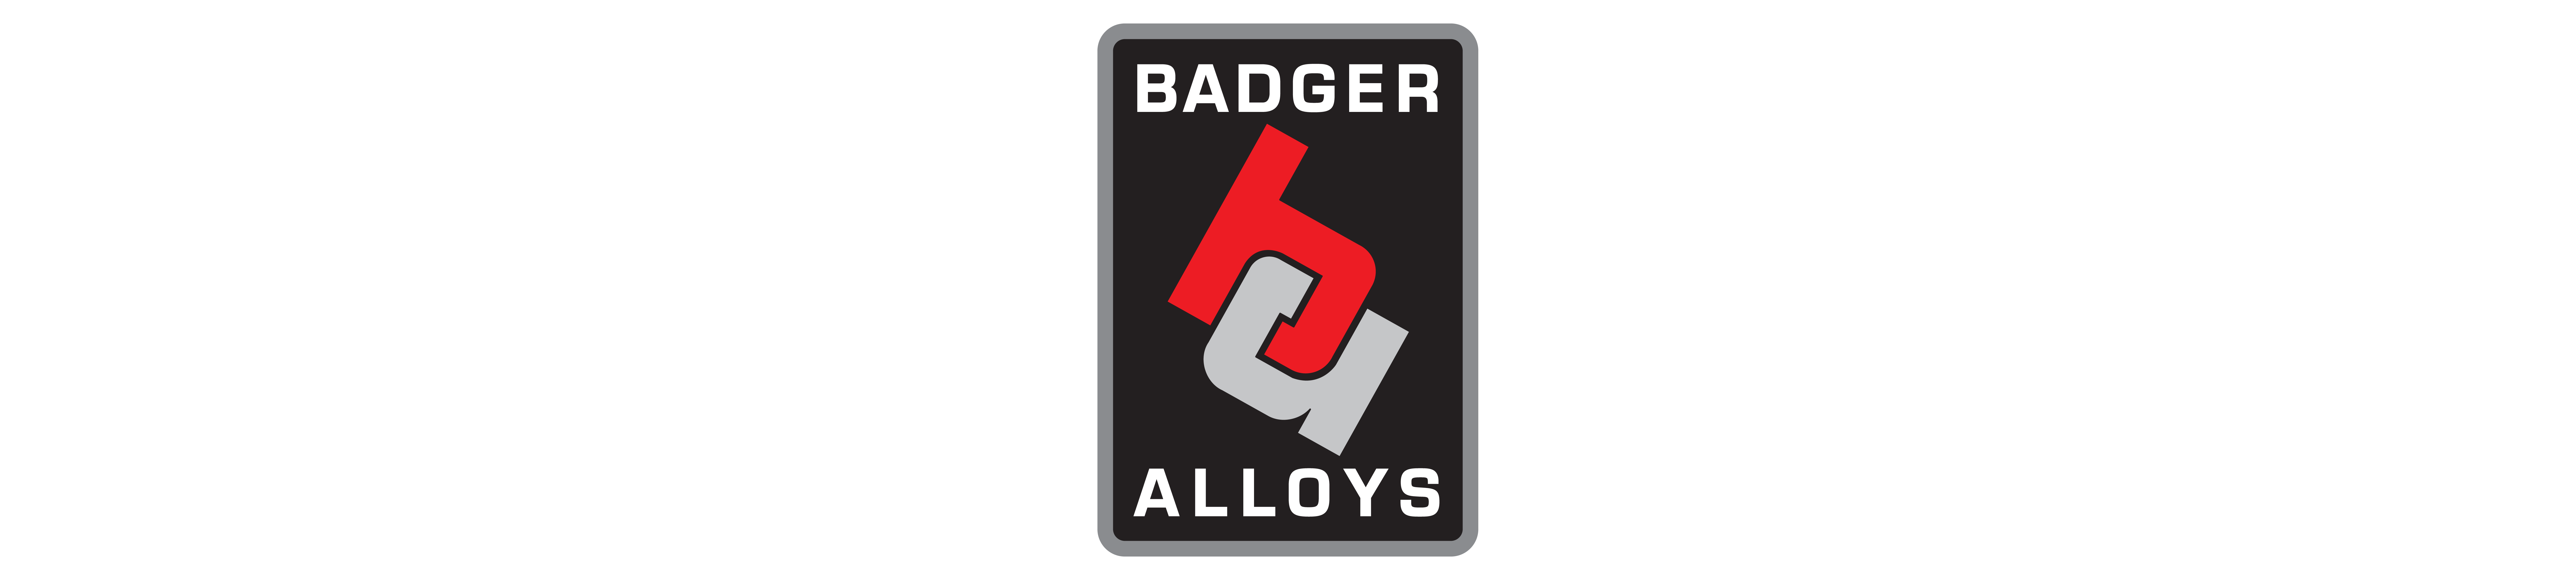 Badger Alloys, Inc.